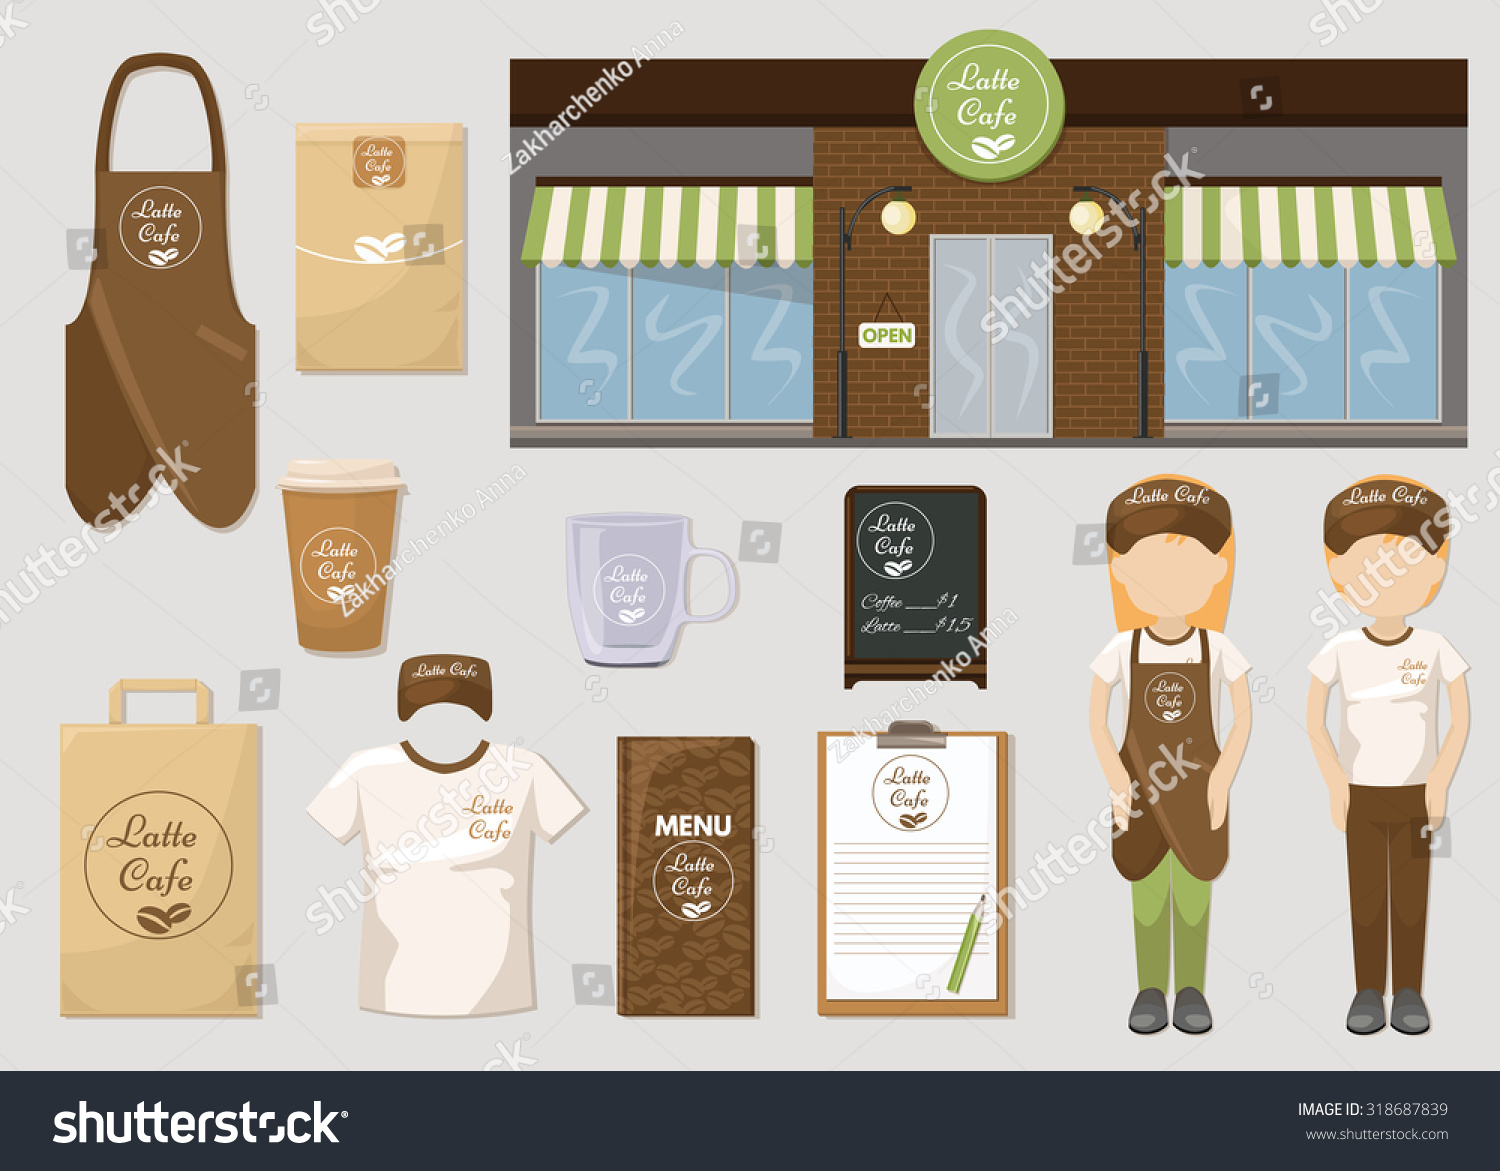 White apron mockup free